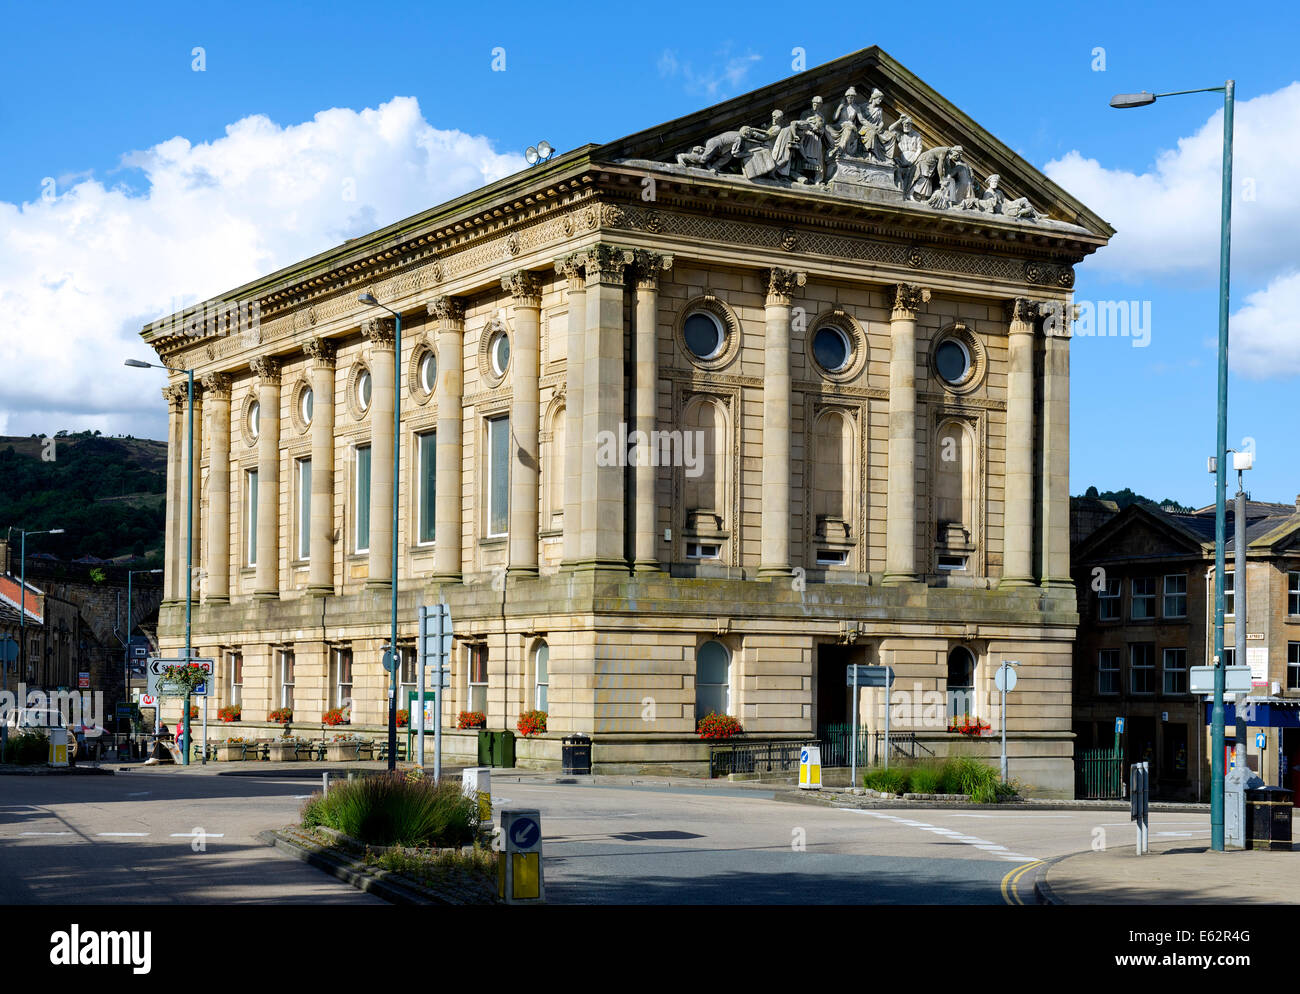 The Town Hall, Todmorden, West Yorkshire, England UK - Stock Image